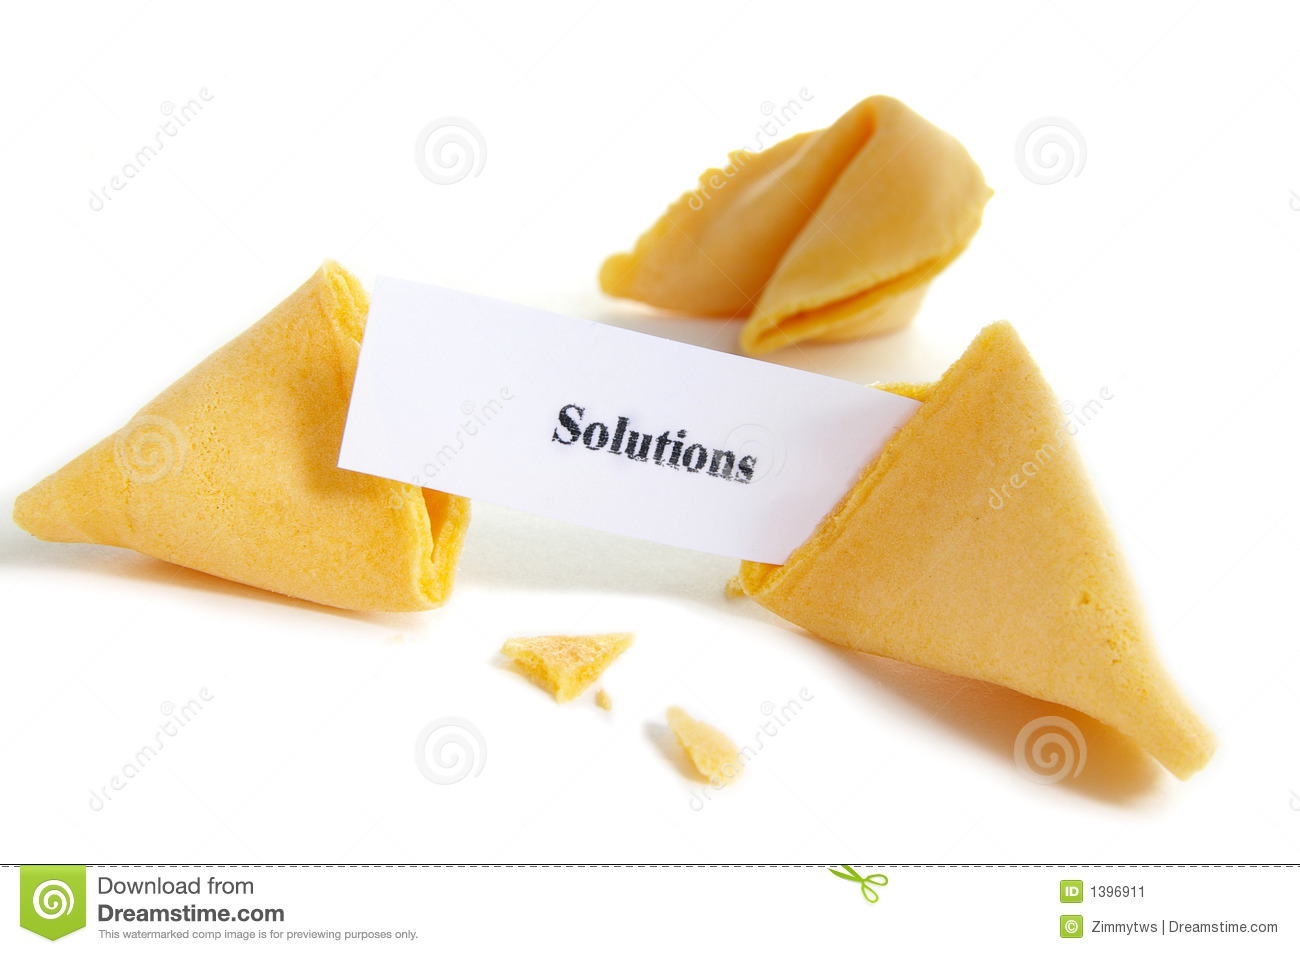 find solutions stock image image 1396911 Blank Fortune Cookie Fortune Cookie Cartoon